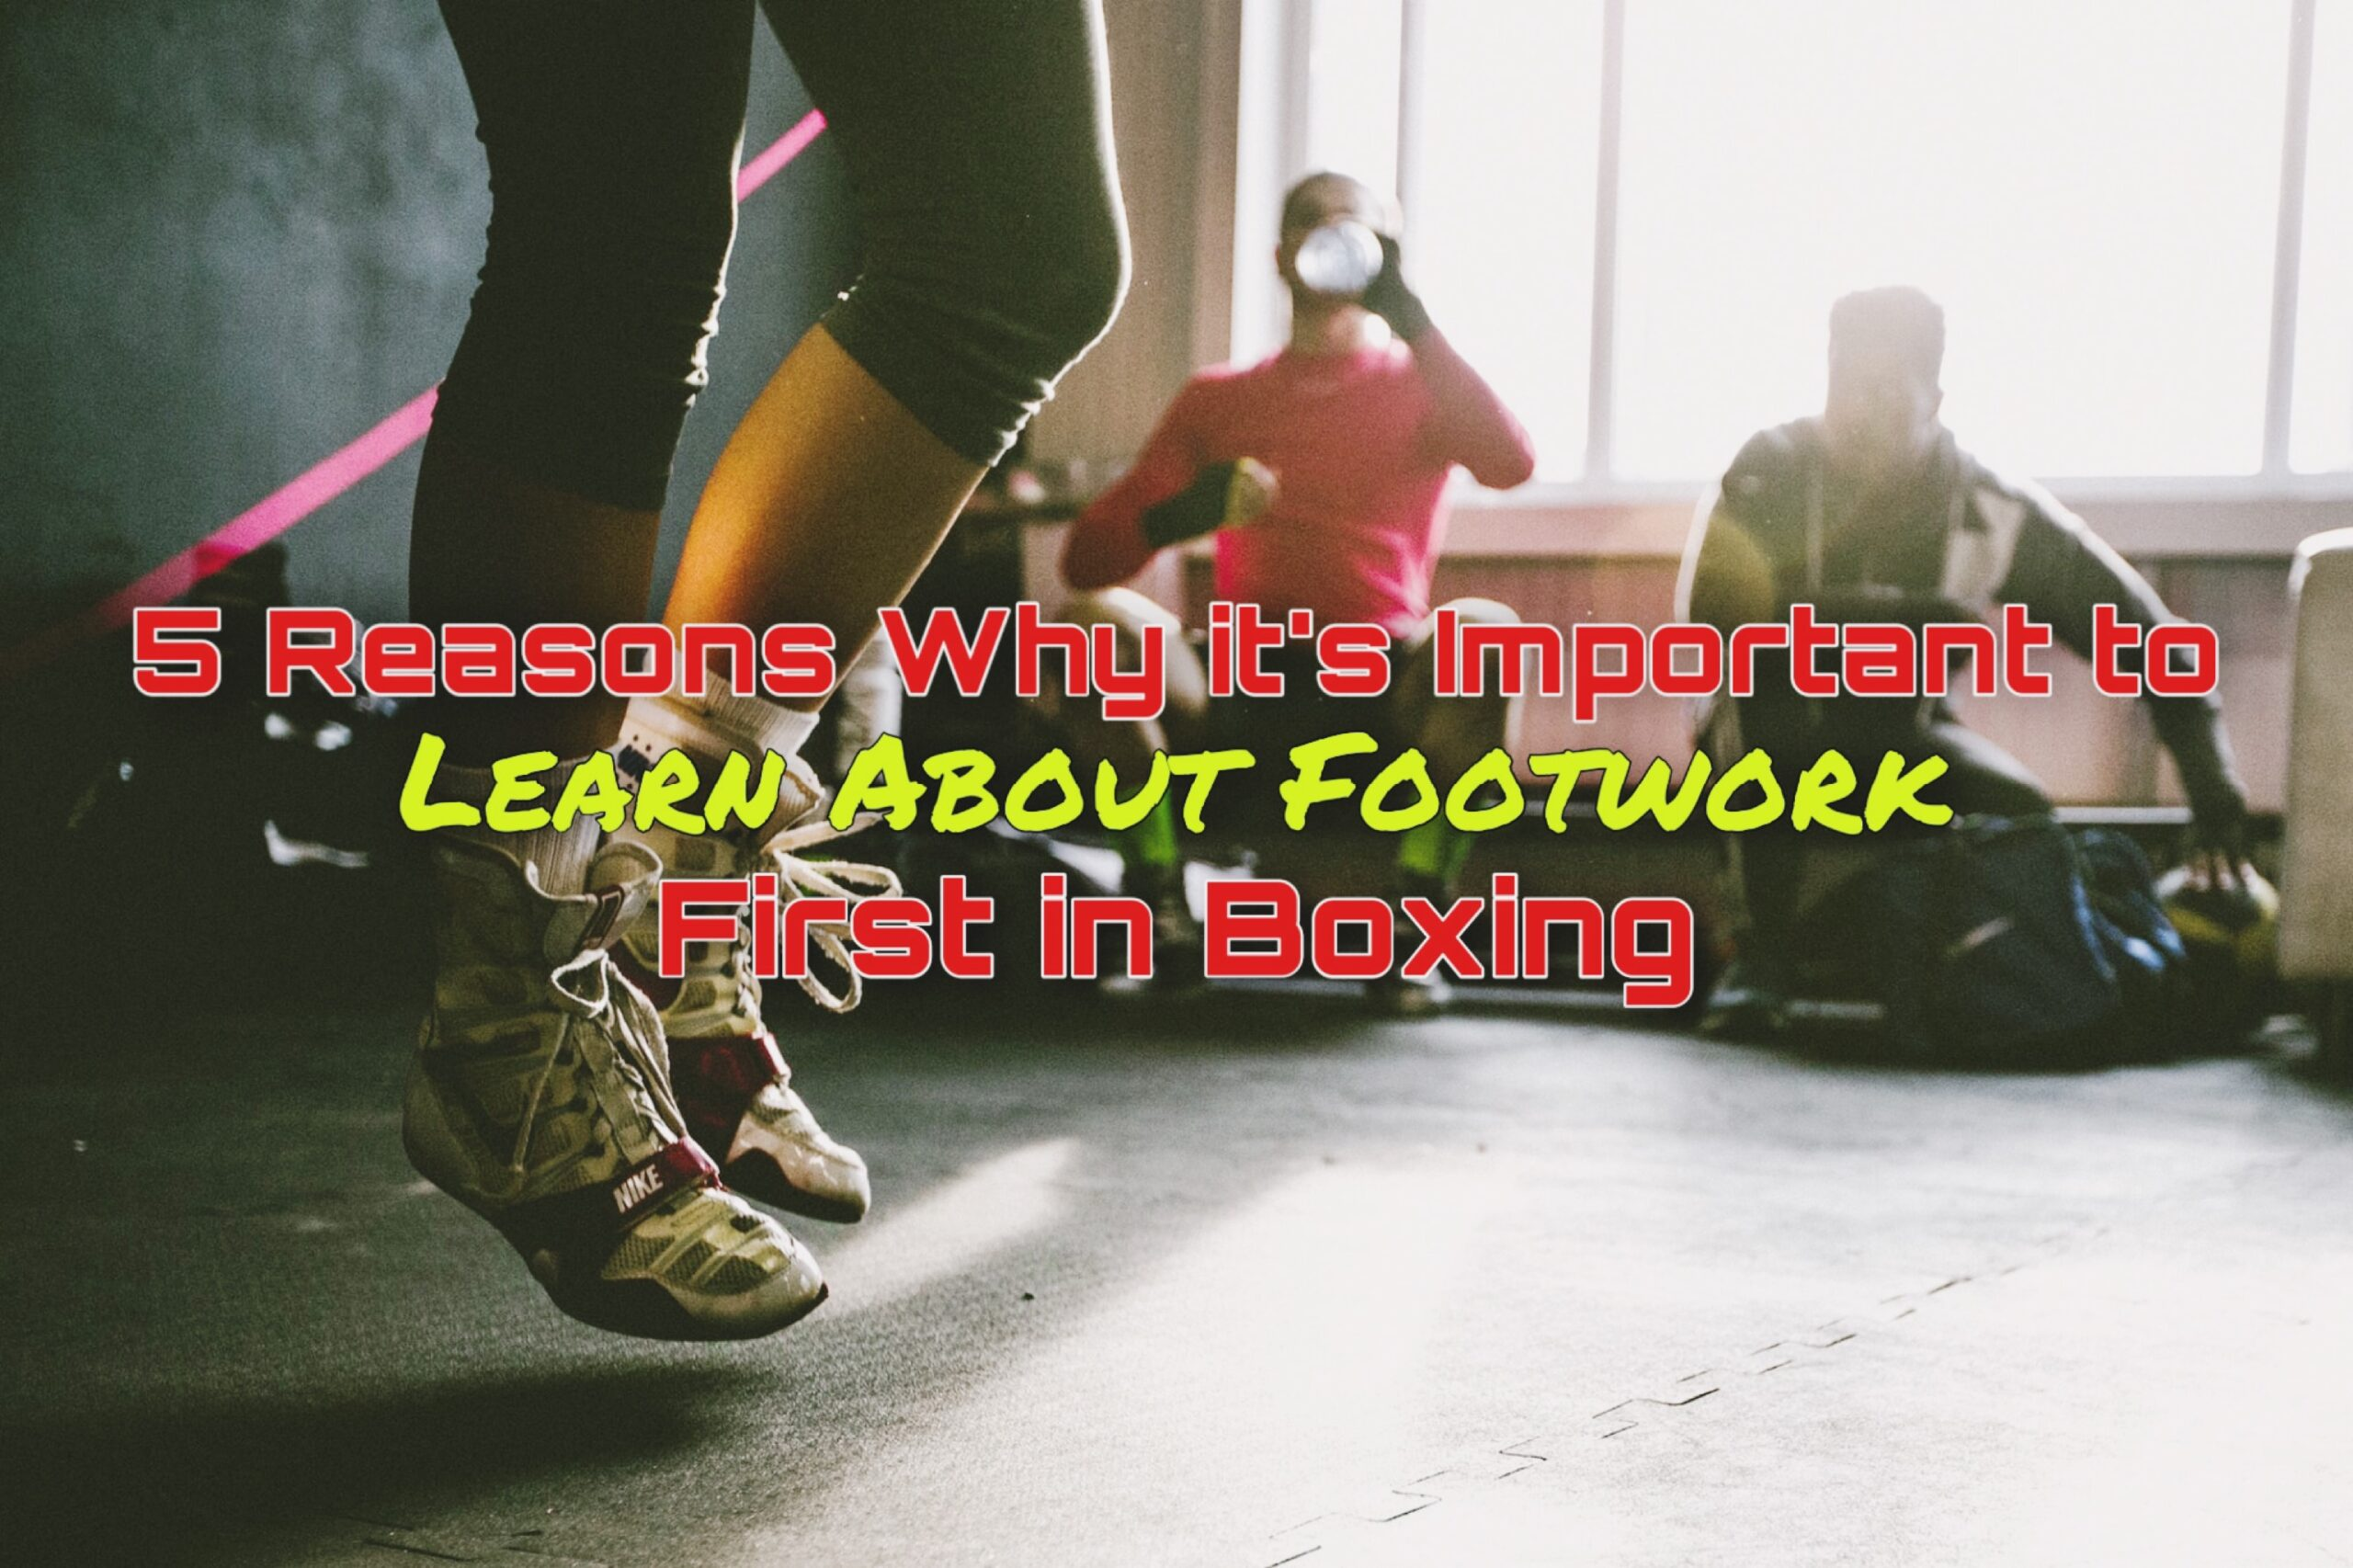 Boxing Footwork   5 Reasons Why It's Important To Learn About it First